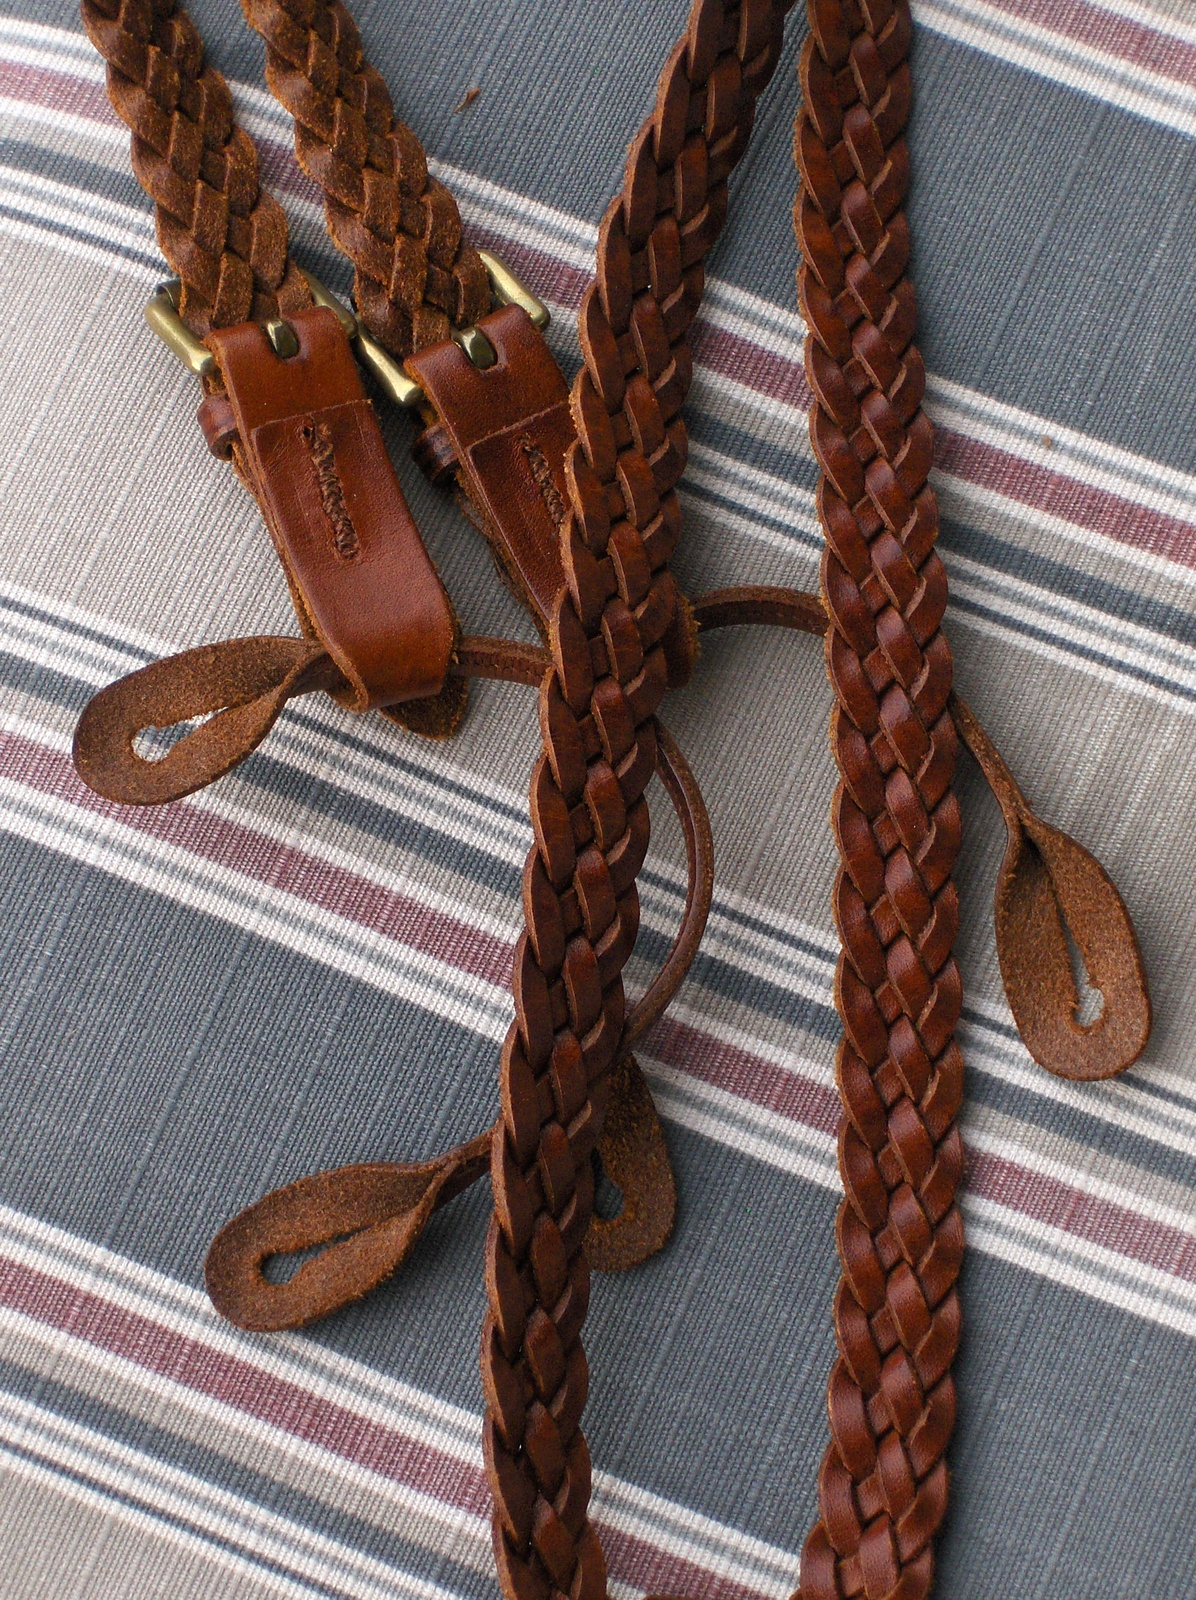 Brooks Brothers Suspenders Mens Braces Brown Braided Woven Leather Button Hook